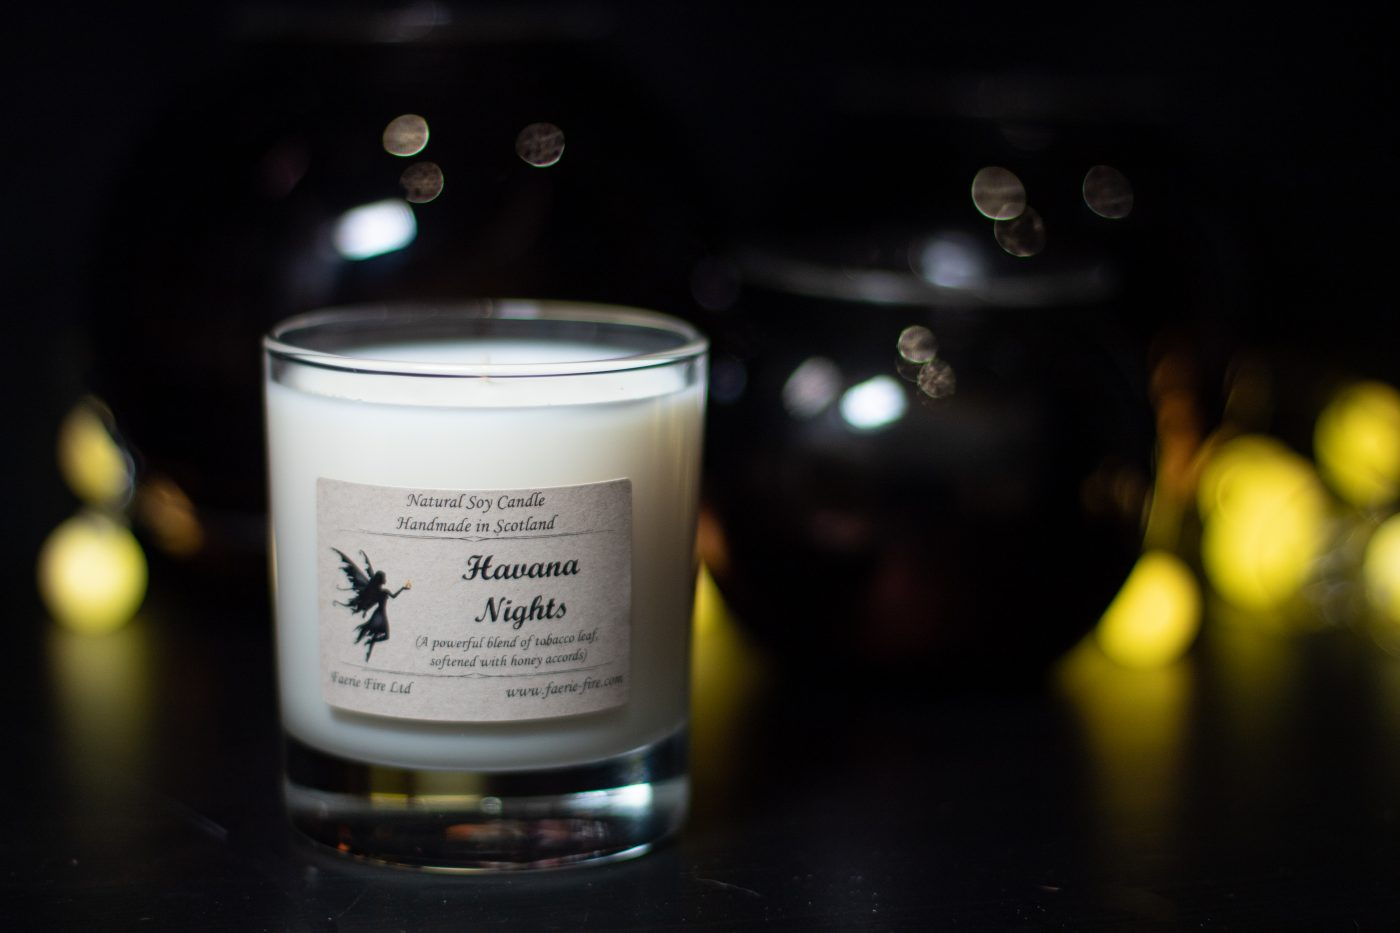 havana nights dark honey and tobacco jar candle sitting on a table with a dark background